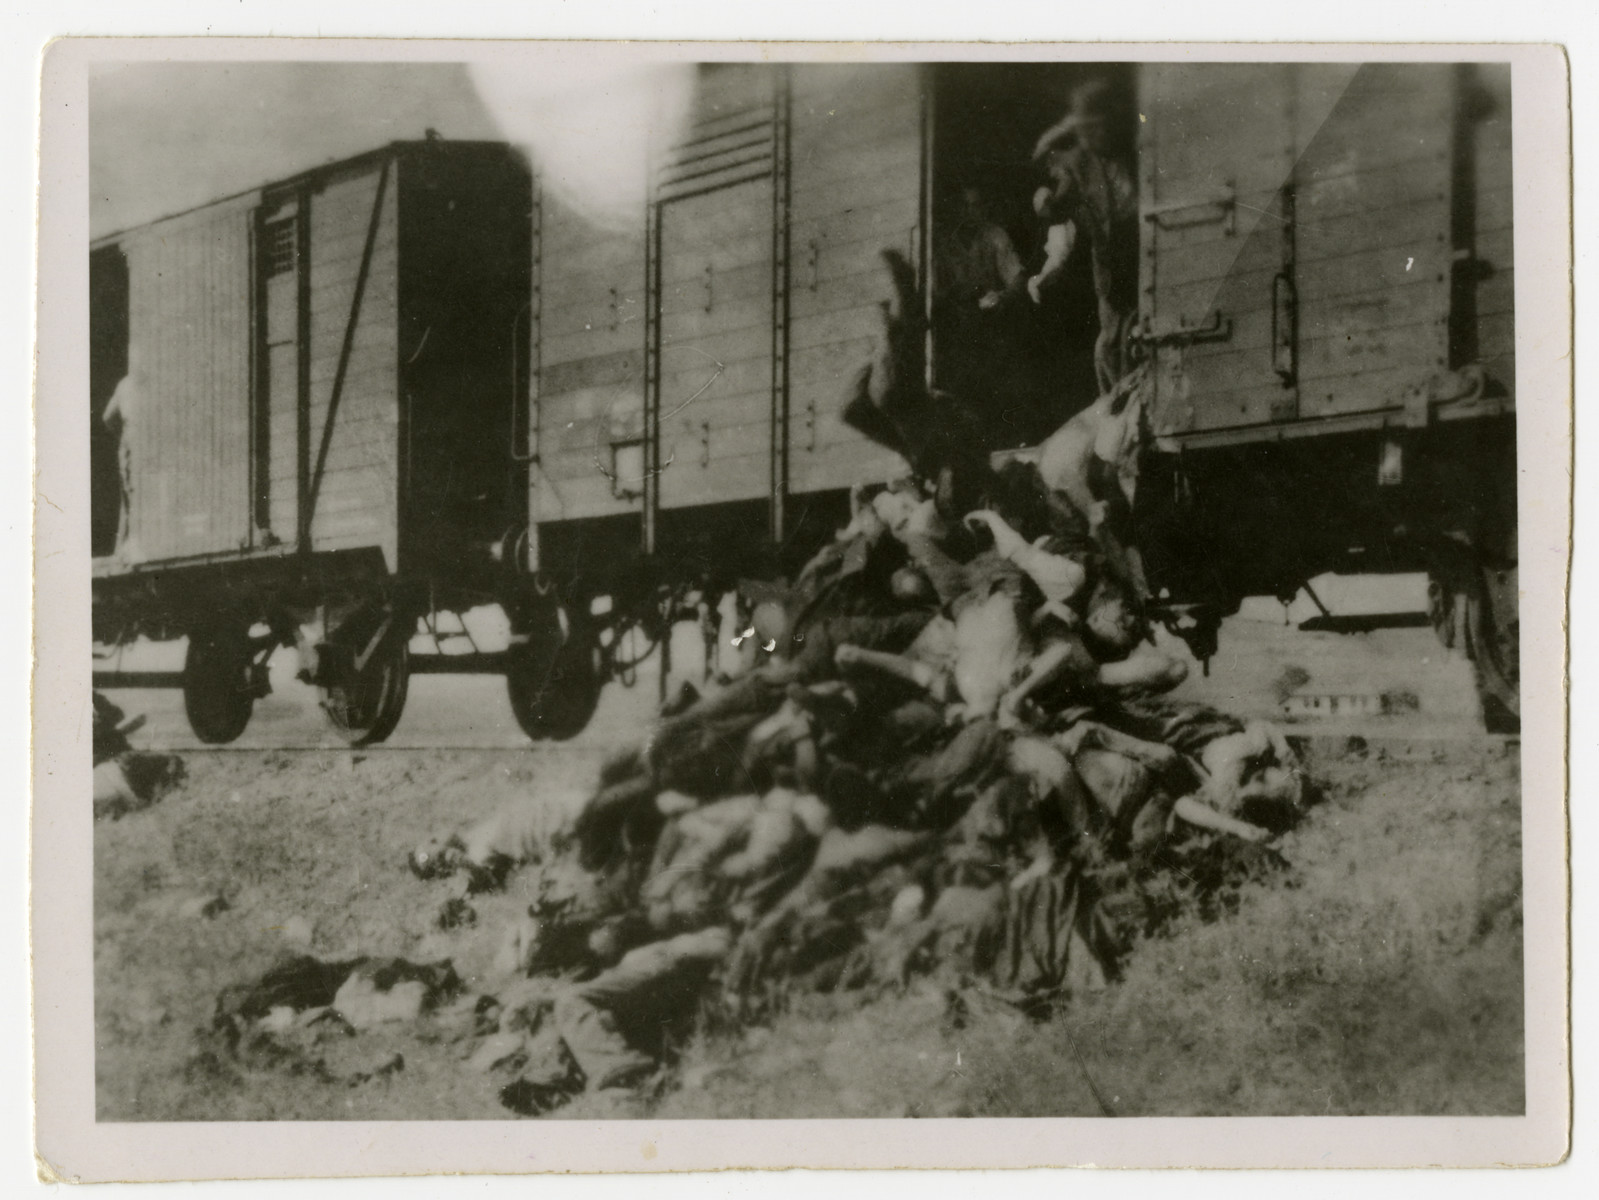 Corpses are tossed from the train during a stop in Podu Iloaiei.